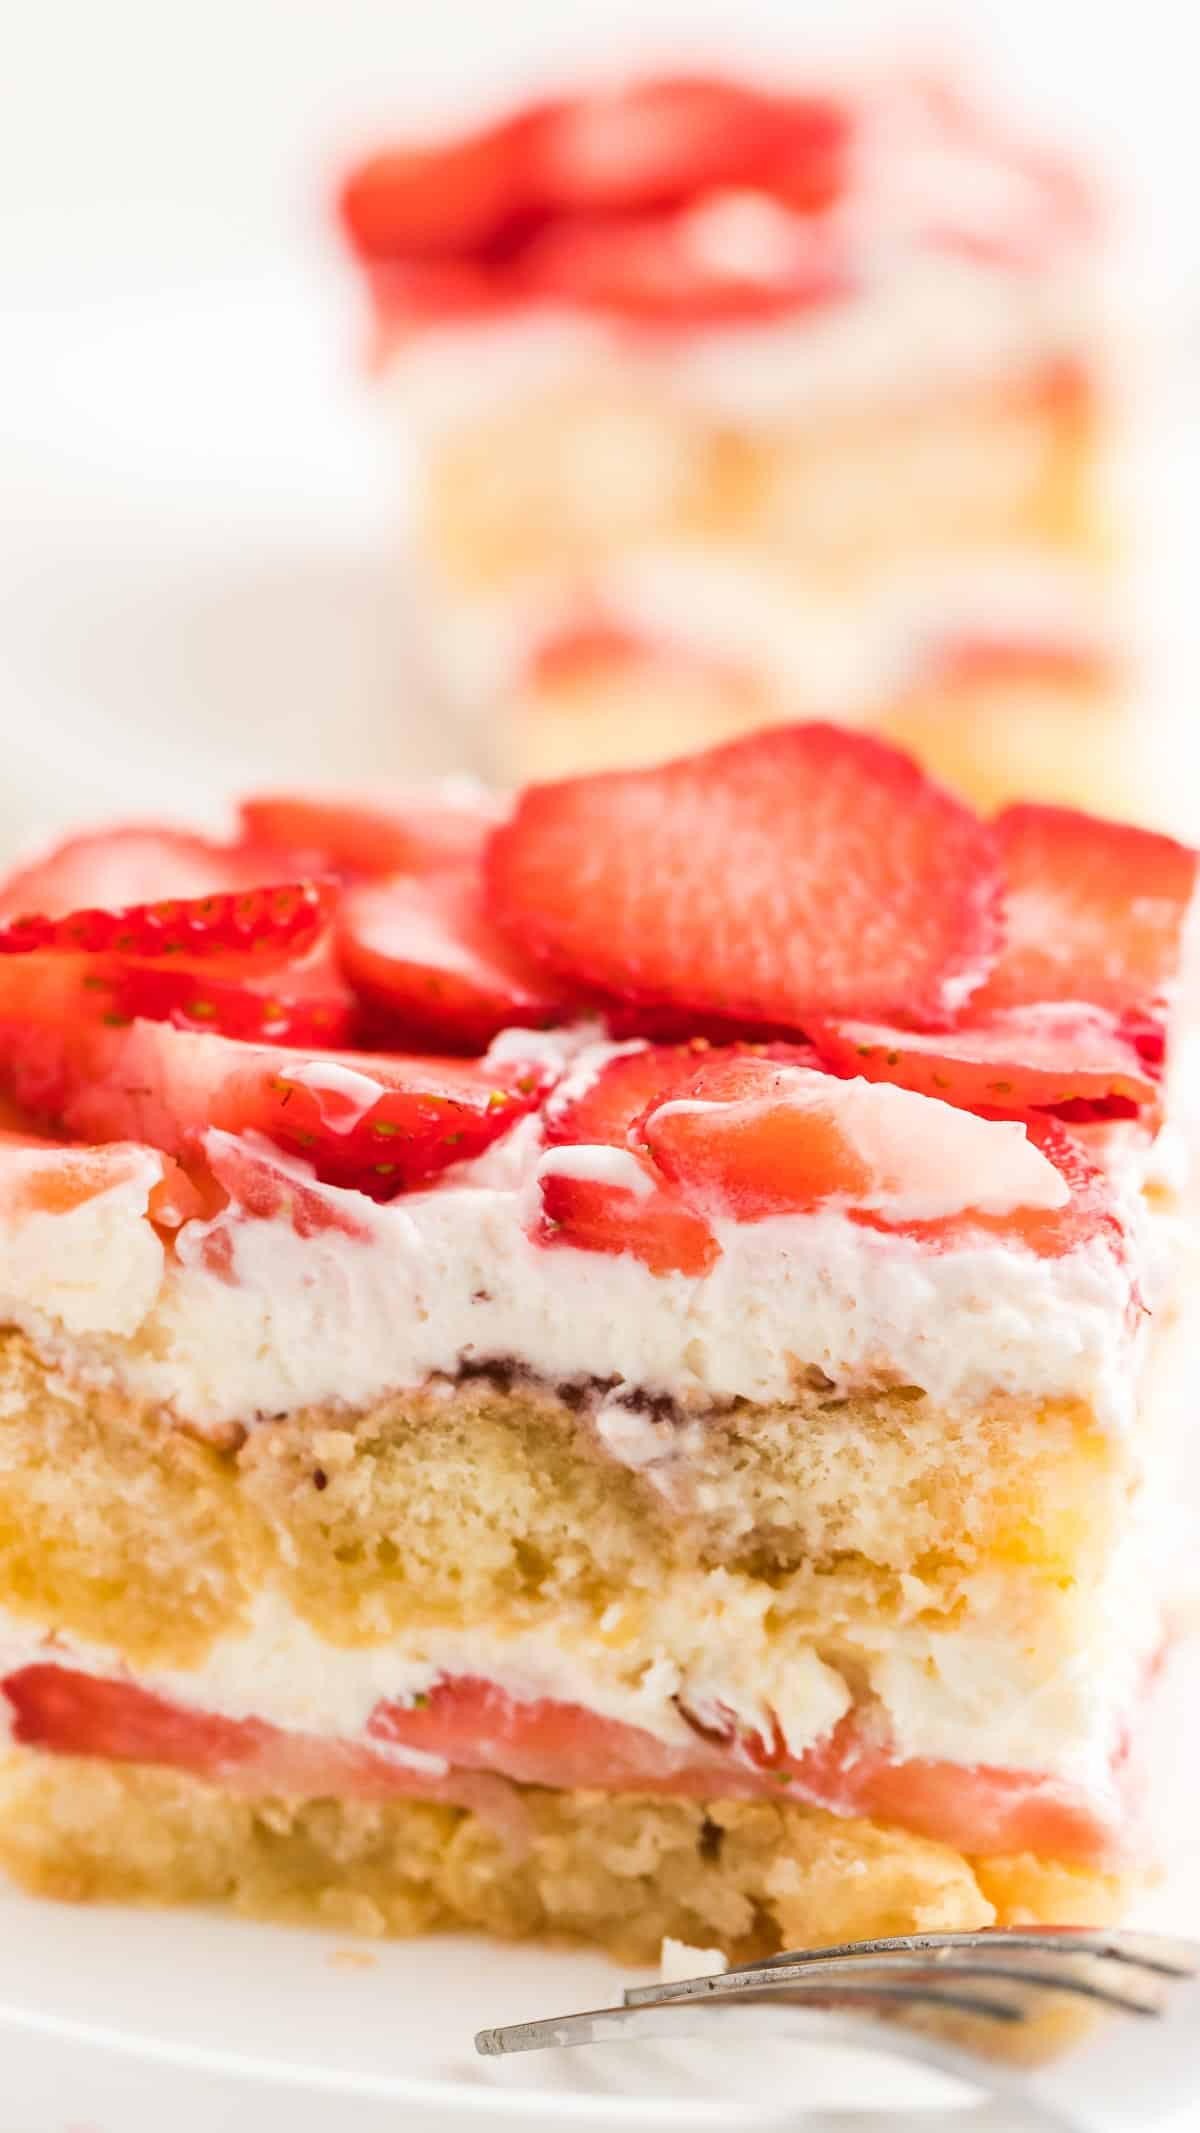 Close up of a cut piece of strawberry tiramisu showing the layers of lady fingers, strawberries, and whipped cream.